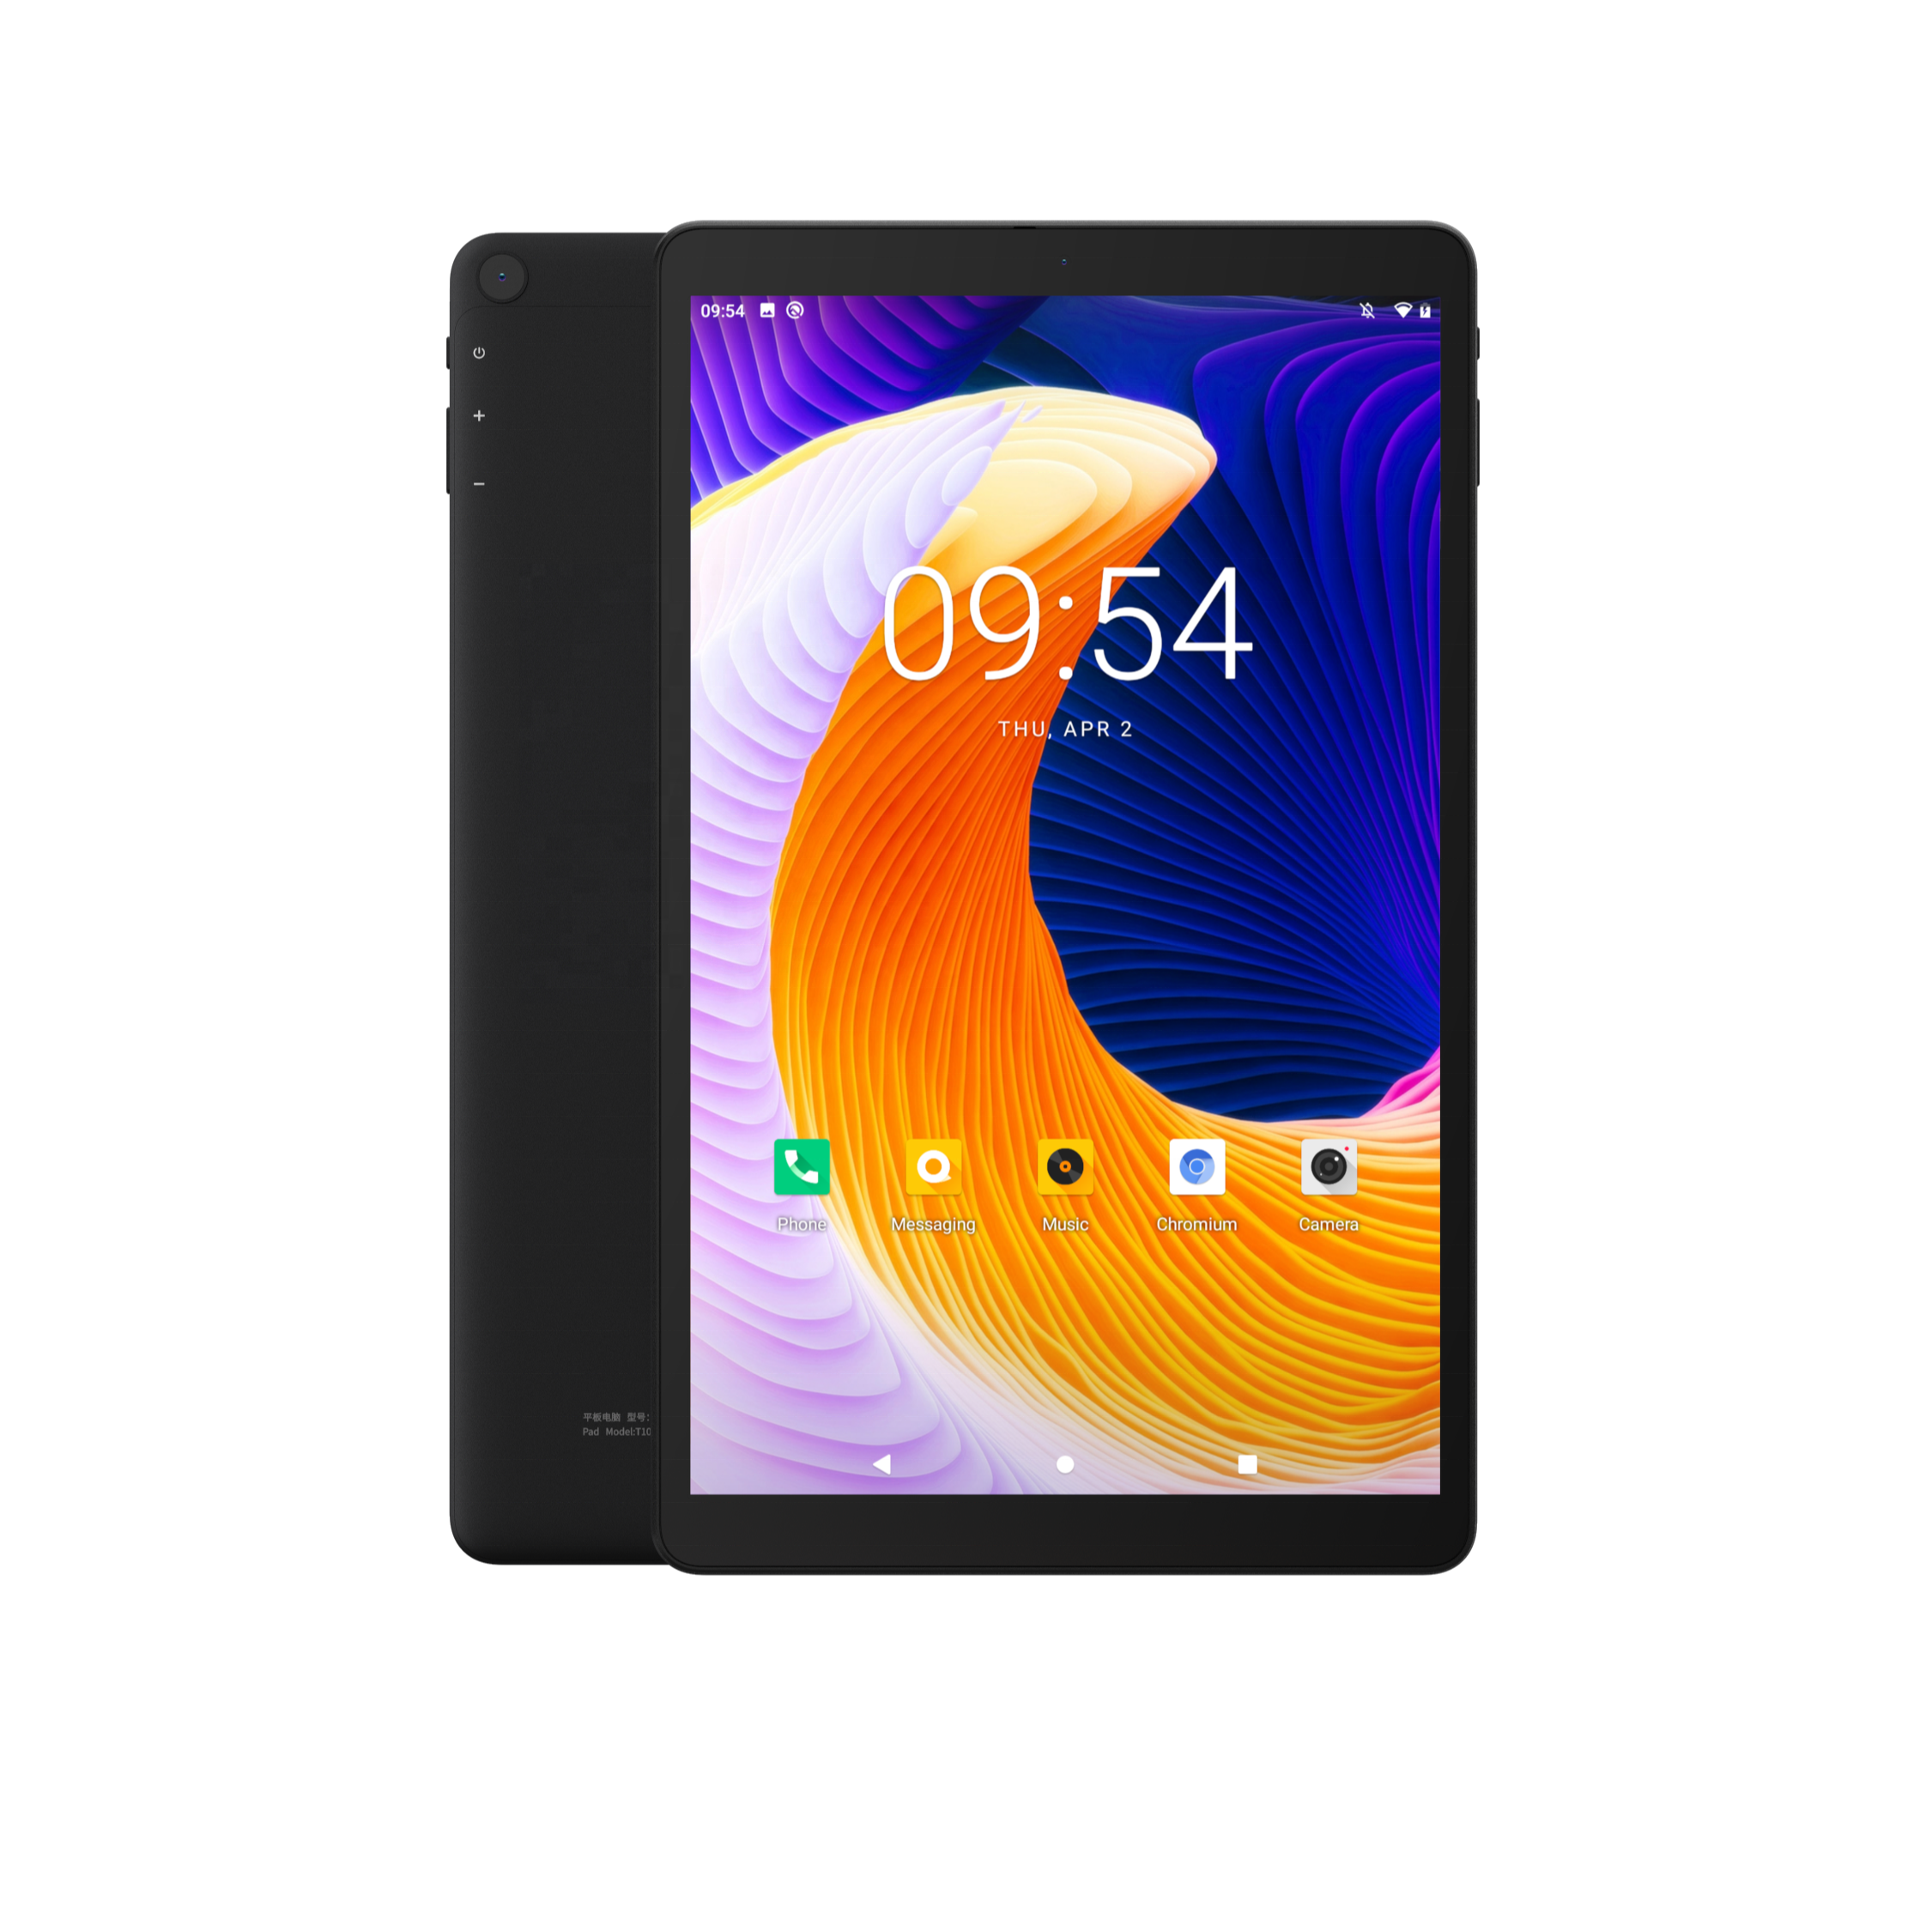 ALLDOCUBE IPLAY 20 /T1011 10.1 inch 4G LTE Android Spreadtrum 9863 Octa Core Tablets PC 1920*1200